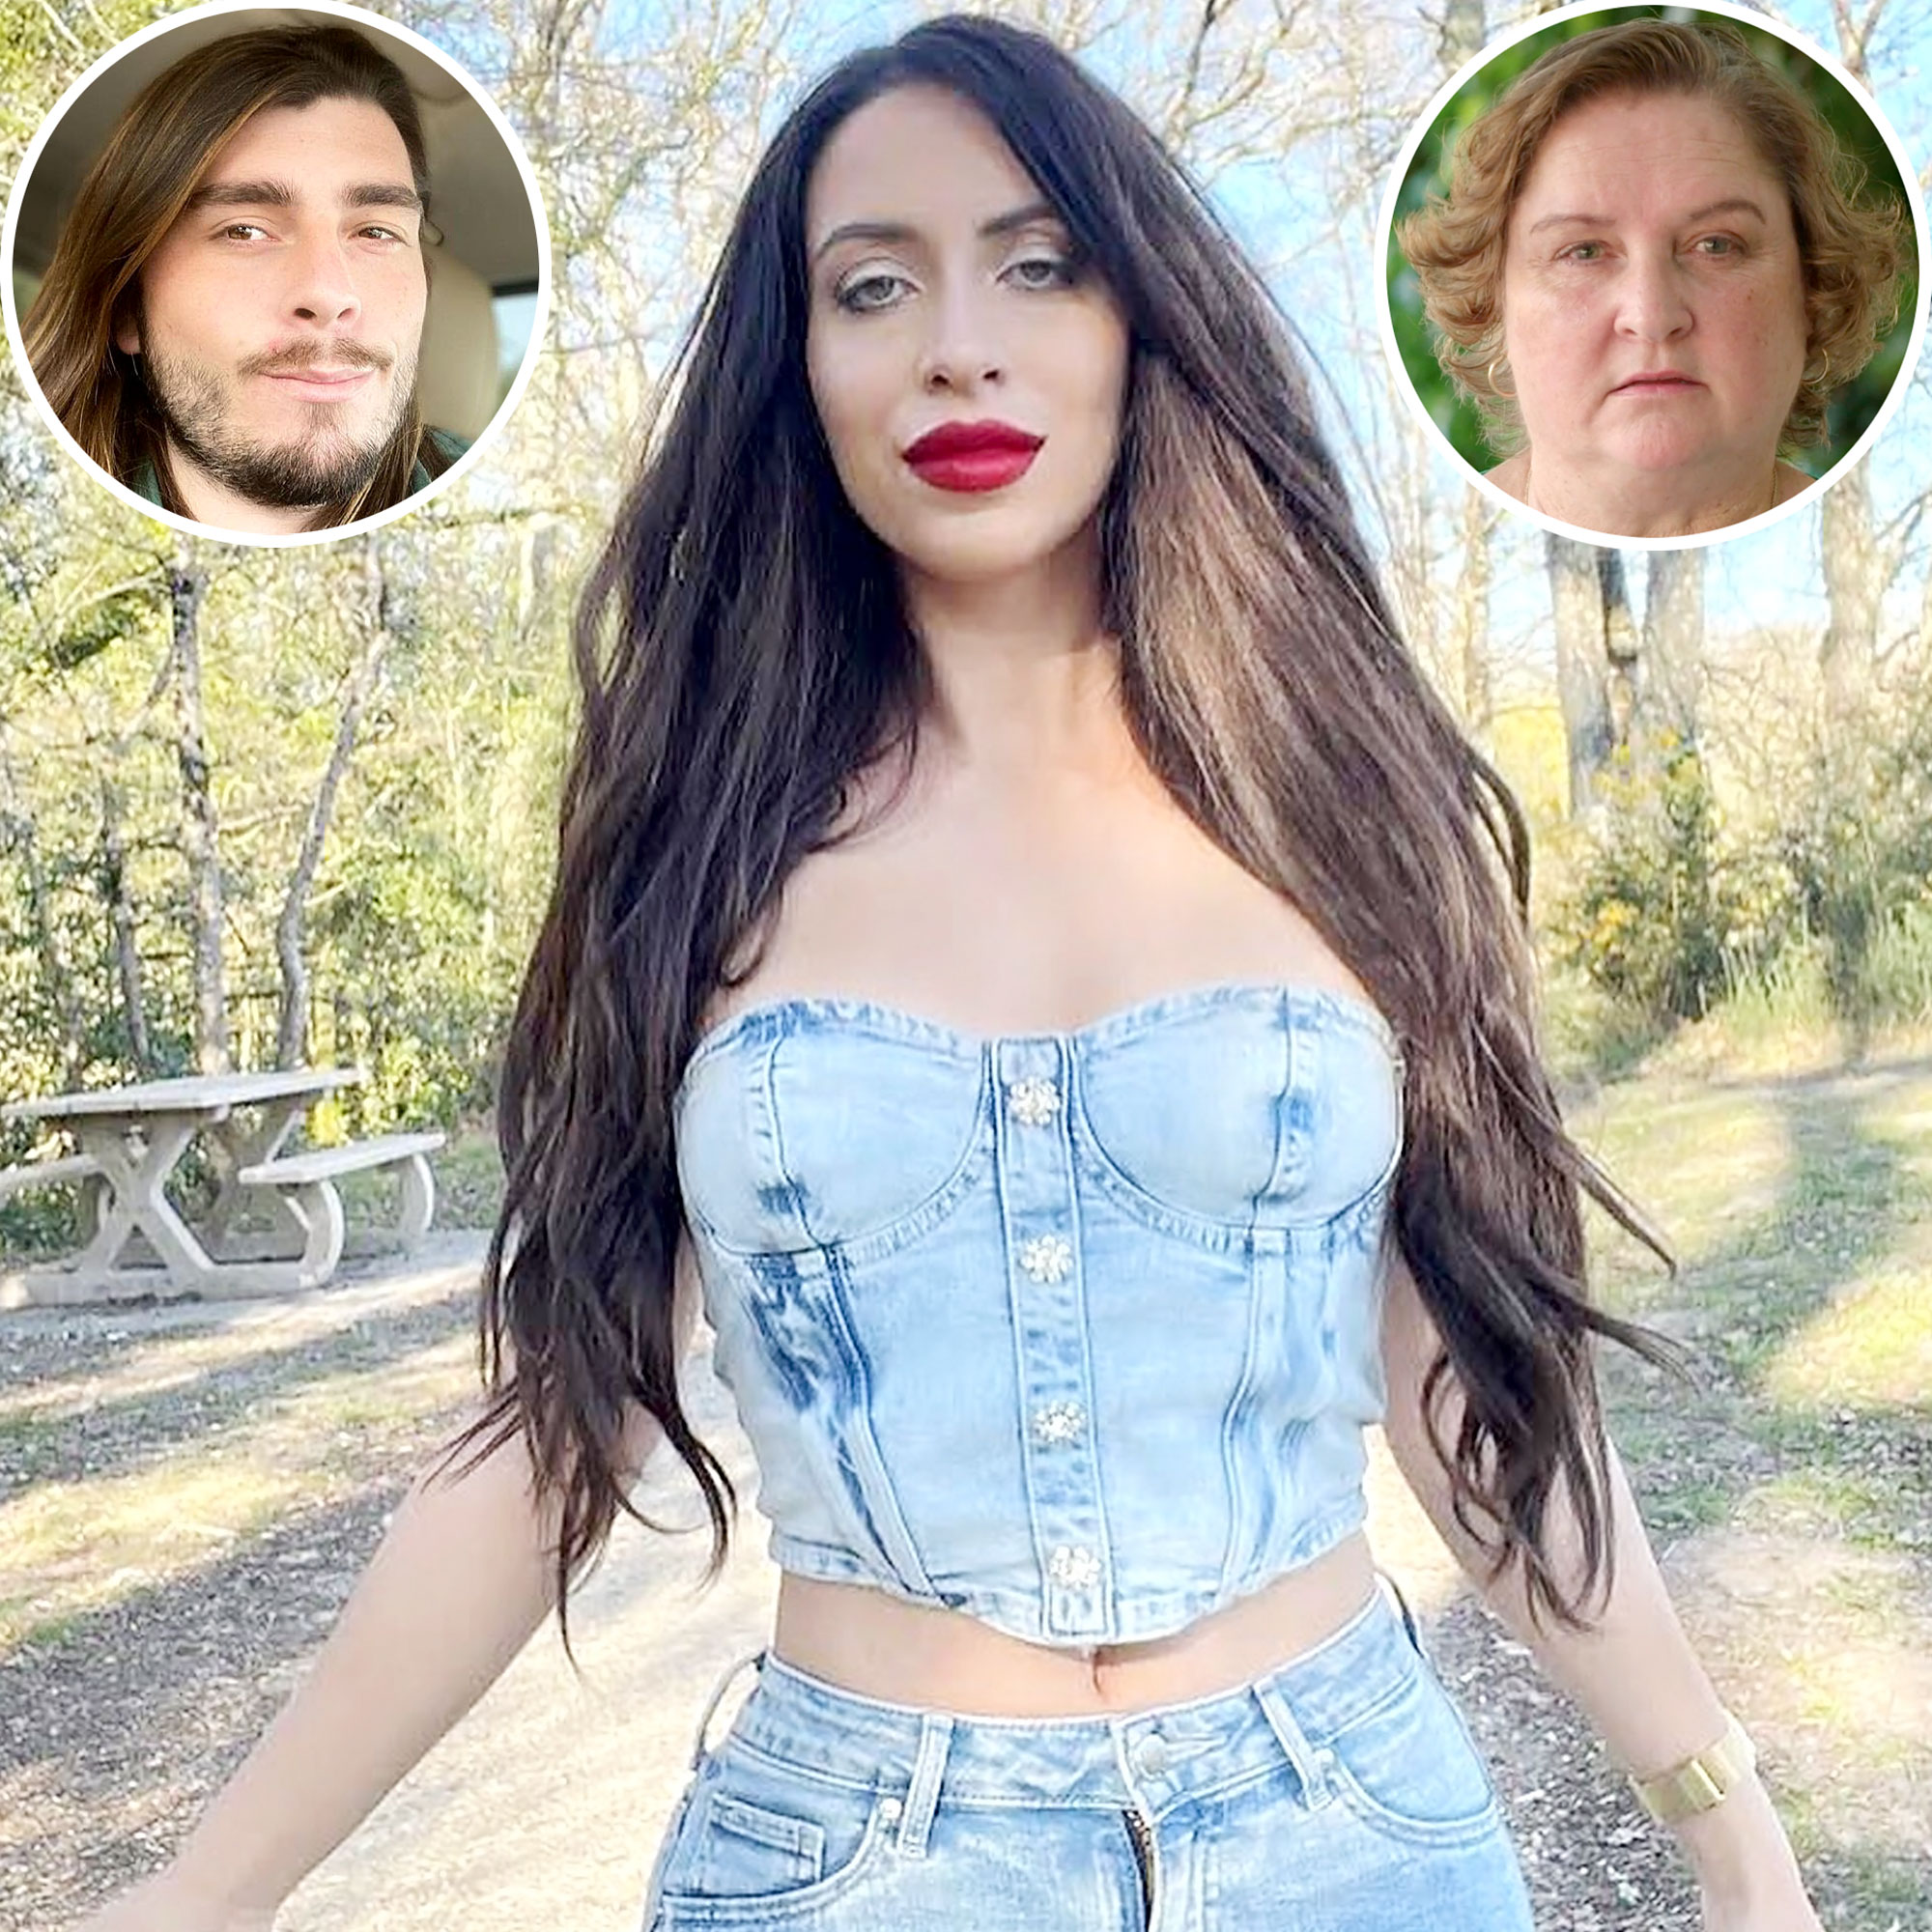 90 Day Fiance Amira Responds Andrew Mom Lori Claims About Their Split